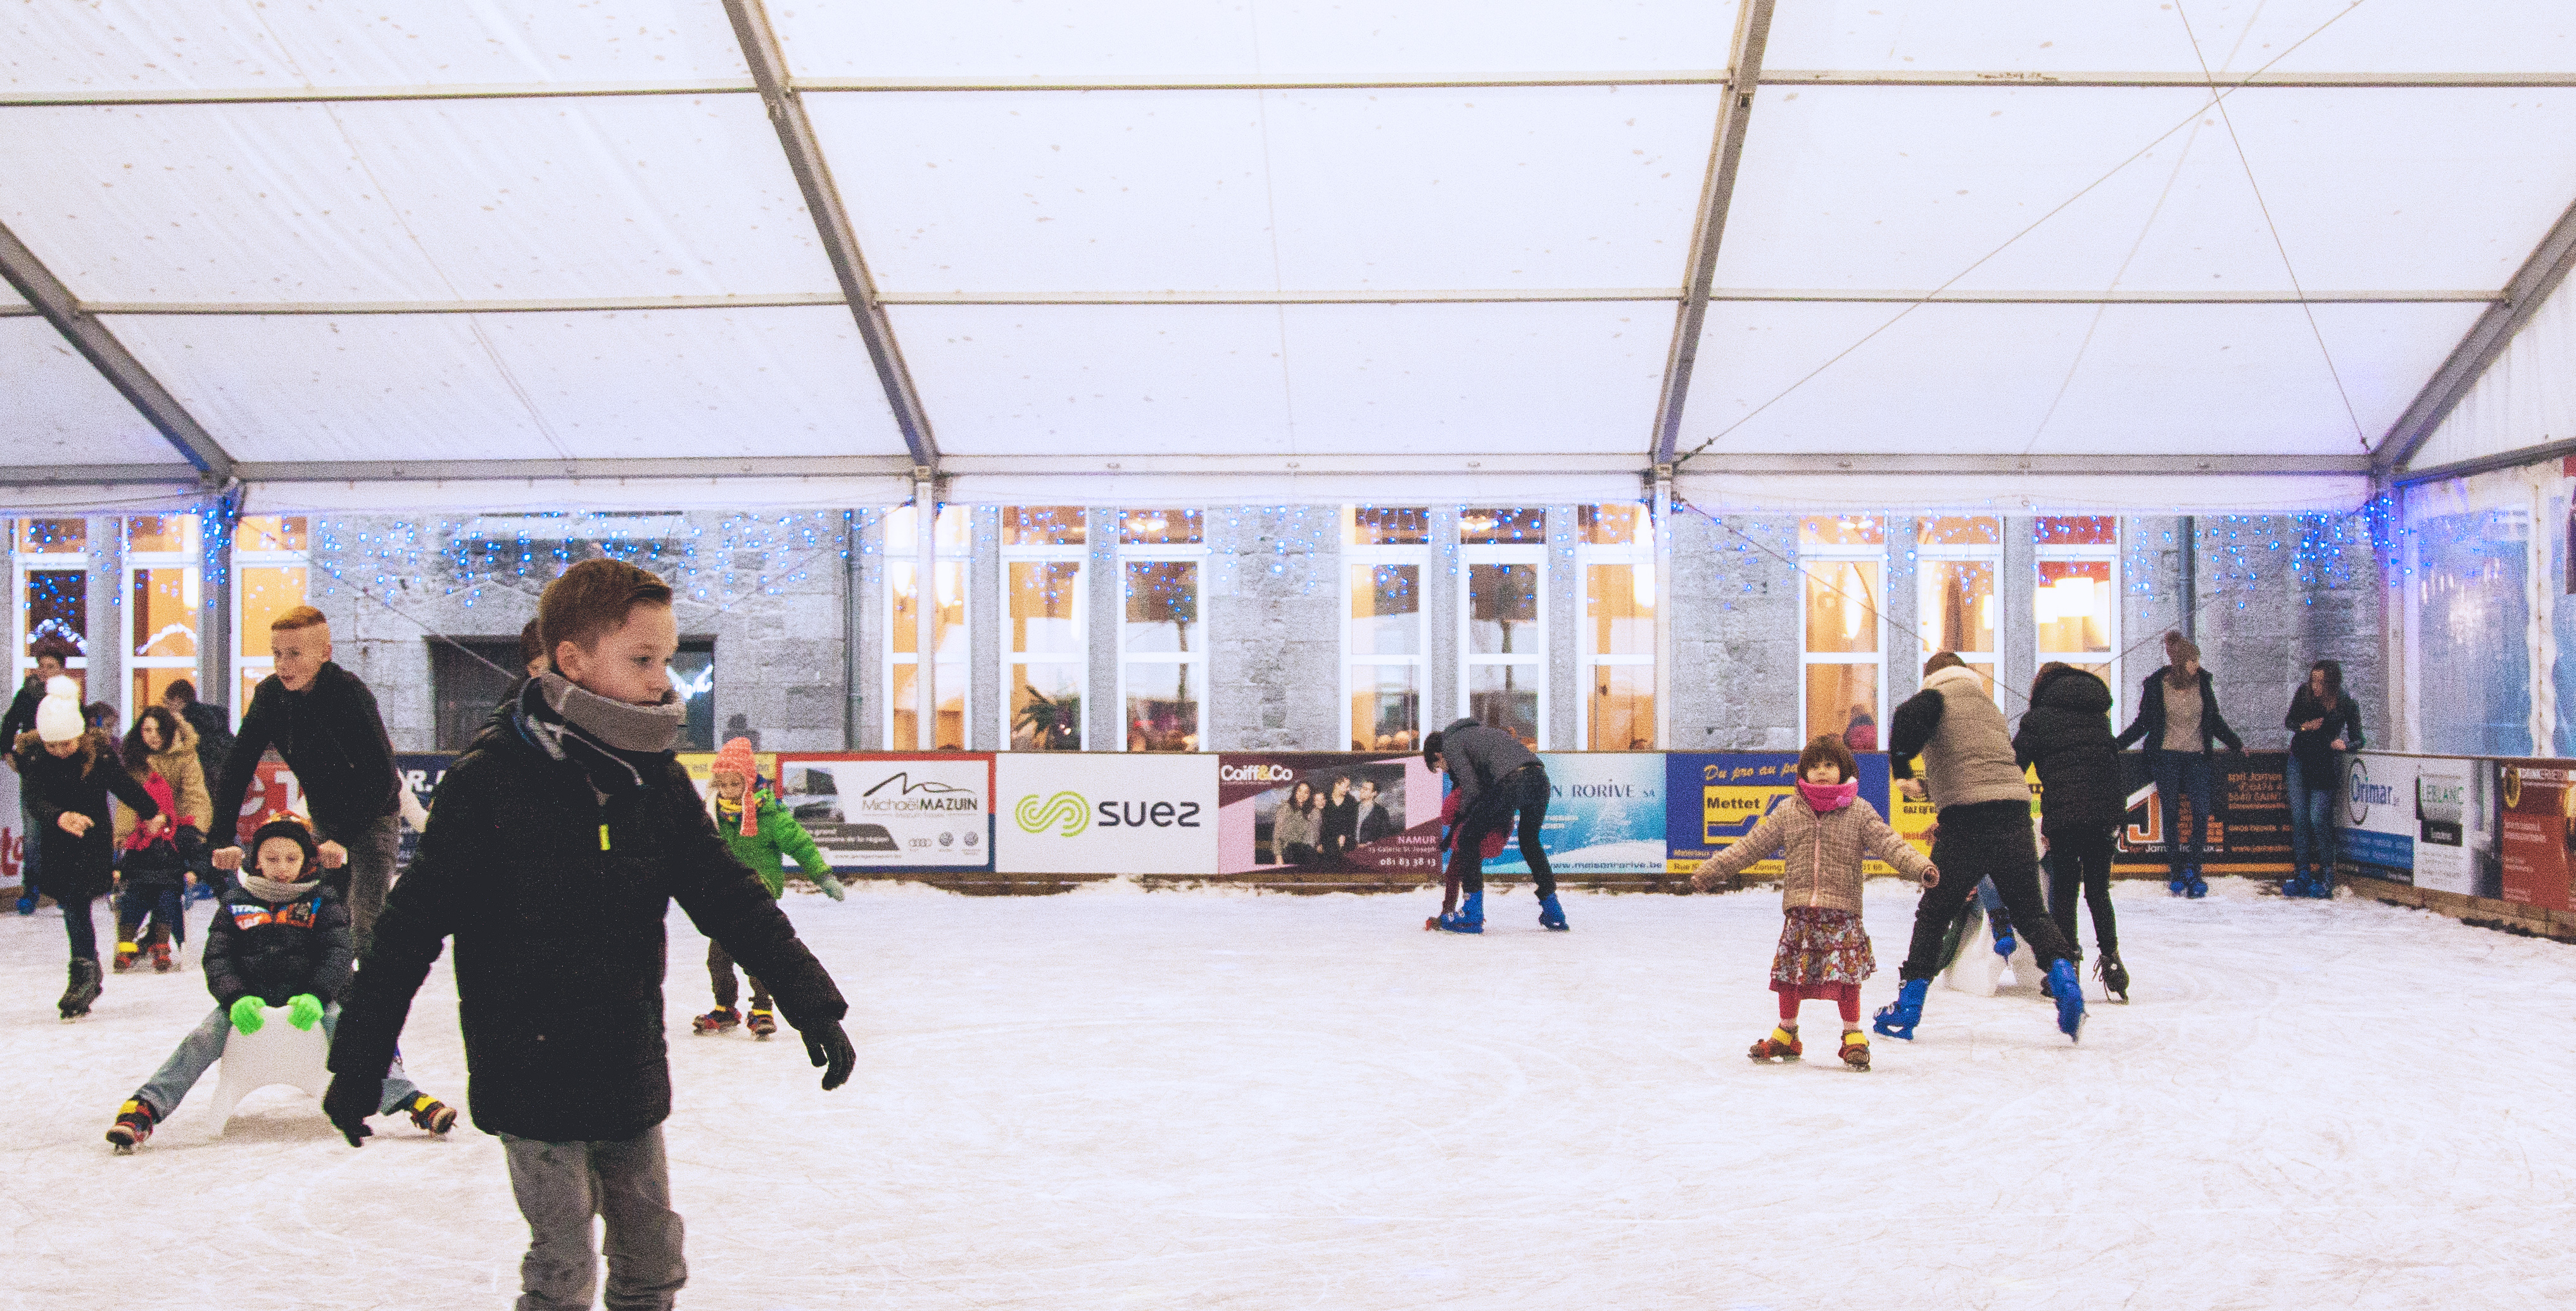 Ice rink in Maredsous